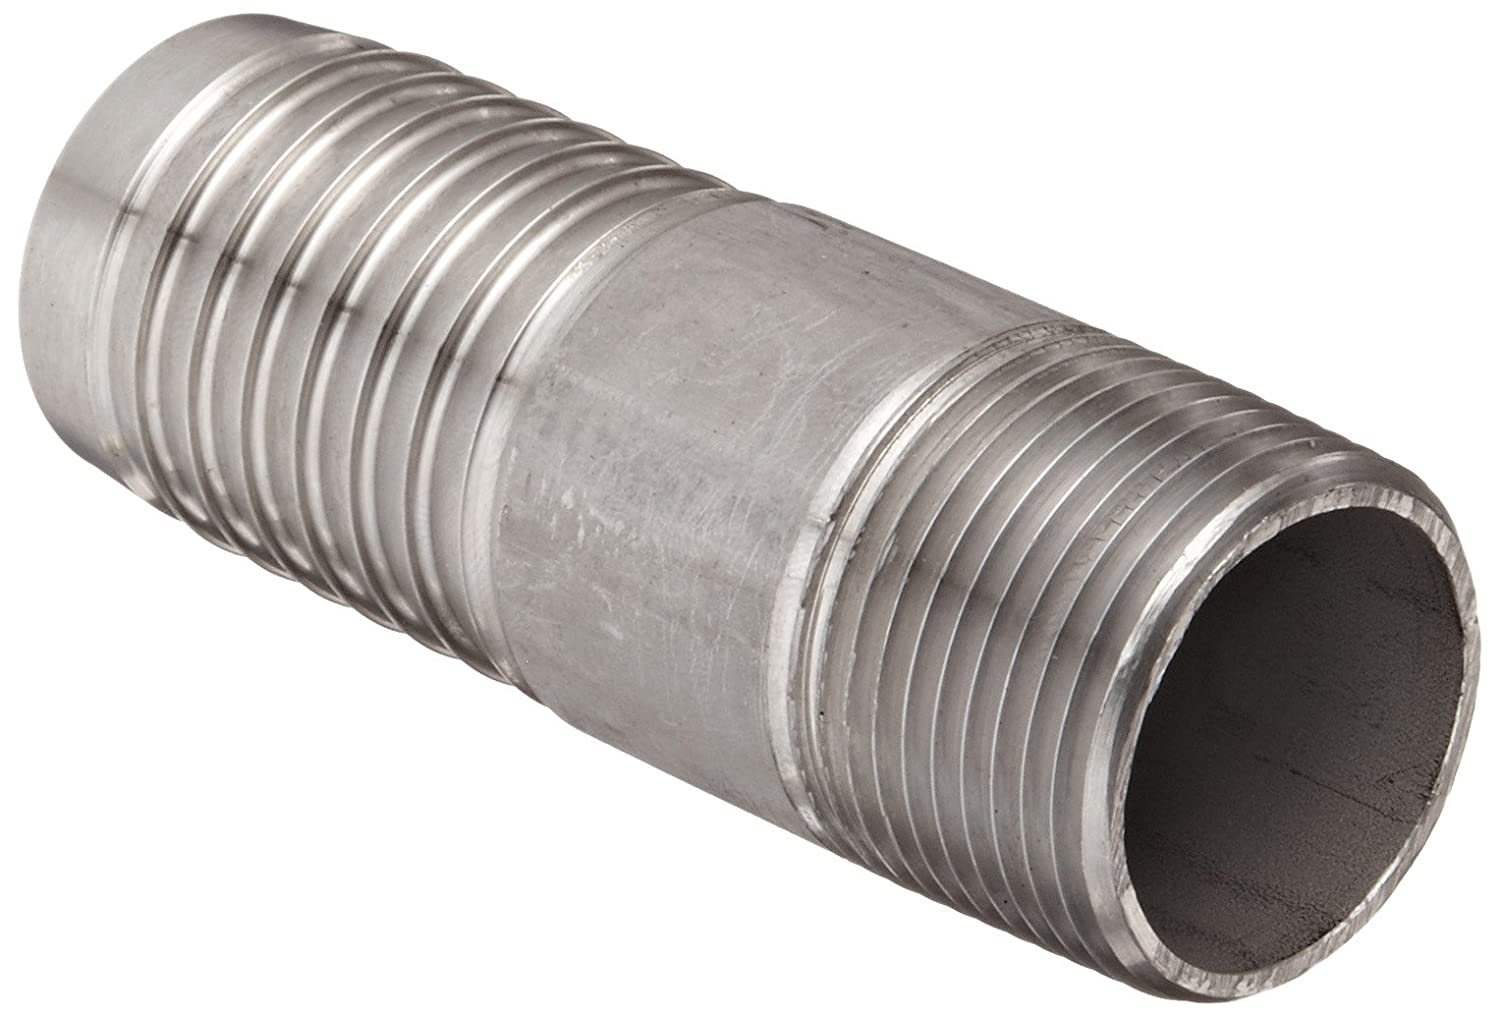 Dixon RST1510 Stainless Steel 316 Hose Fitting, Jump Size King Combination Nipple, 1 NPT Male x 1-1/4 Hose ID Barbed